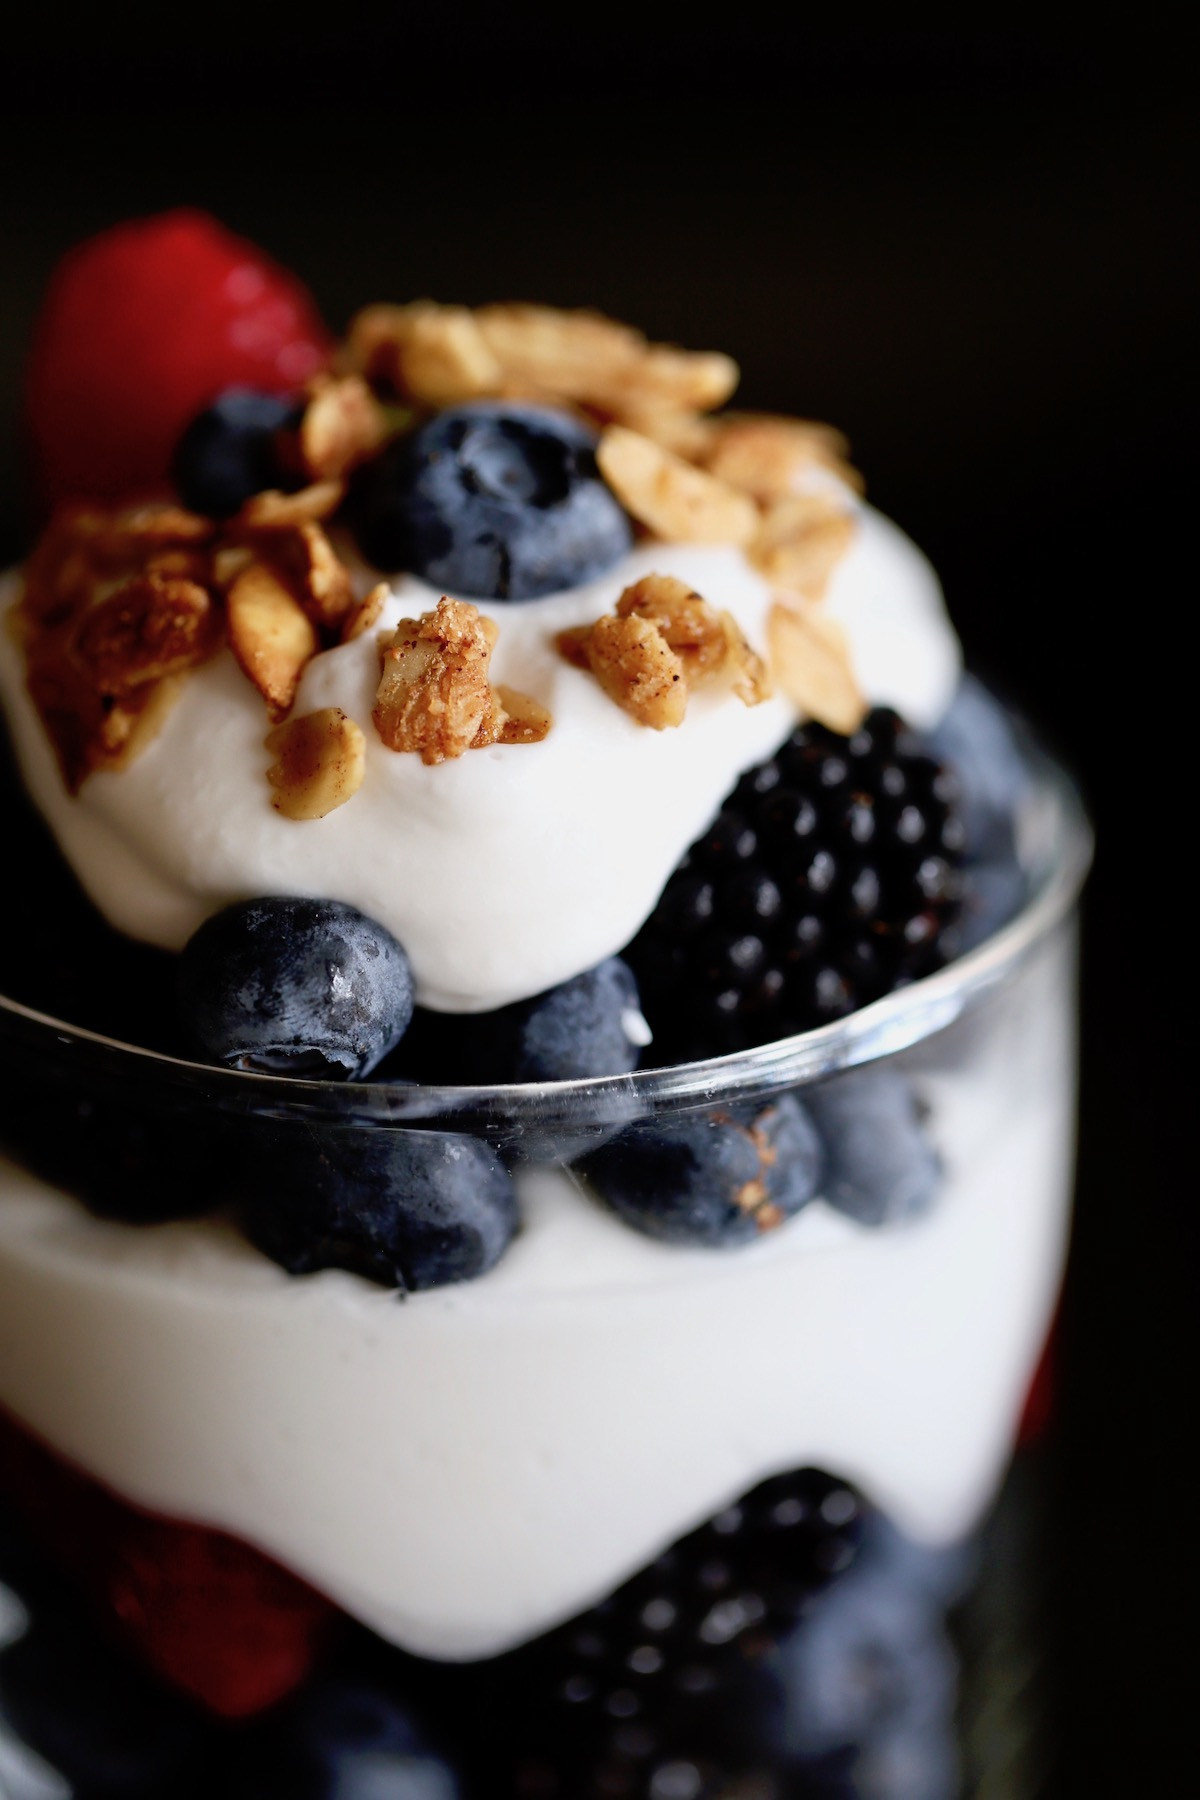 homemade coconut milk whipped cream gets layered with berries and granola for a delicious, healthy dessert